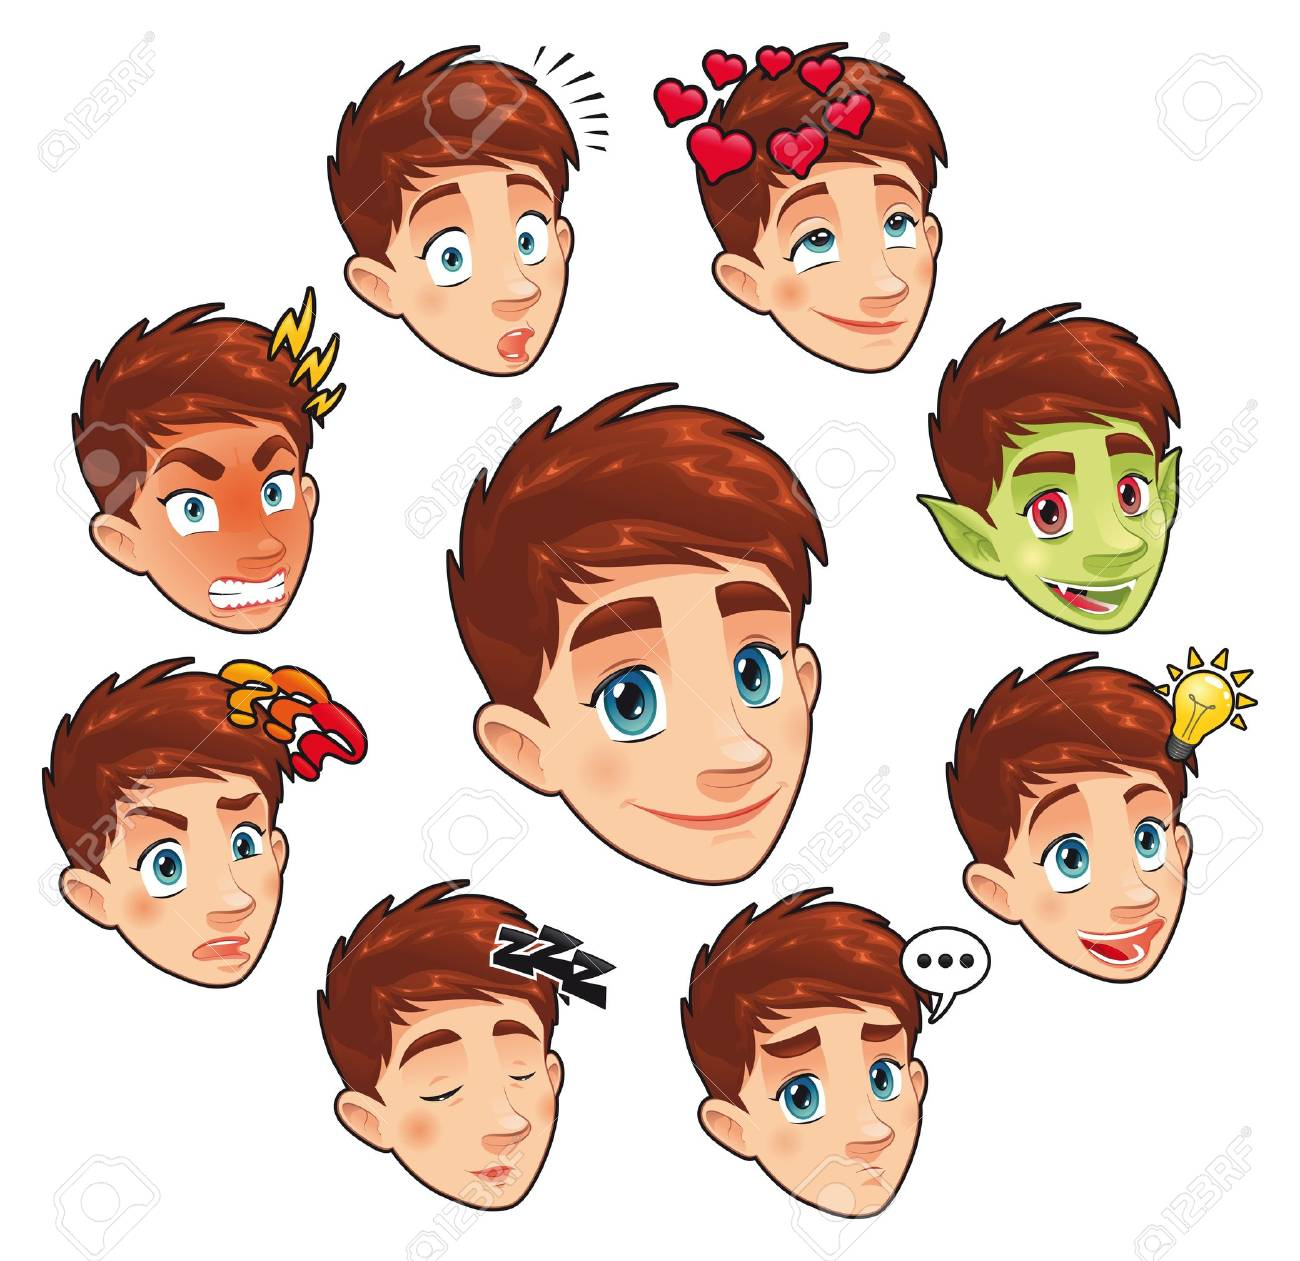 Phenomenal 22 335 Boy Hair Stock Illustrations Cliparts And Royalty Free Boy Hairstyles For Women Draintrainus